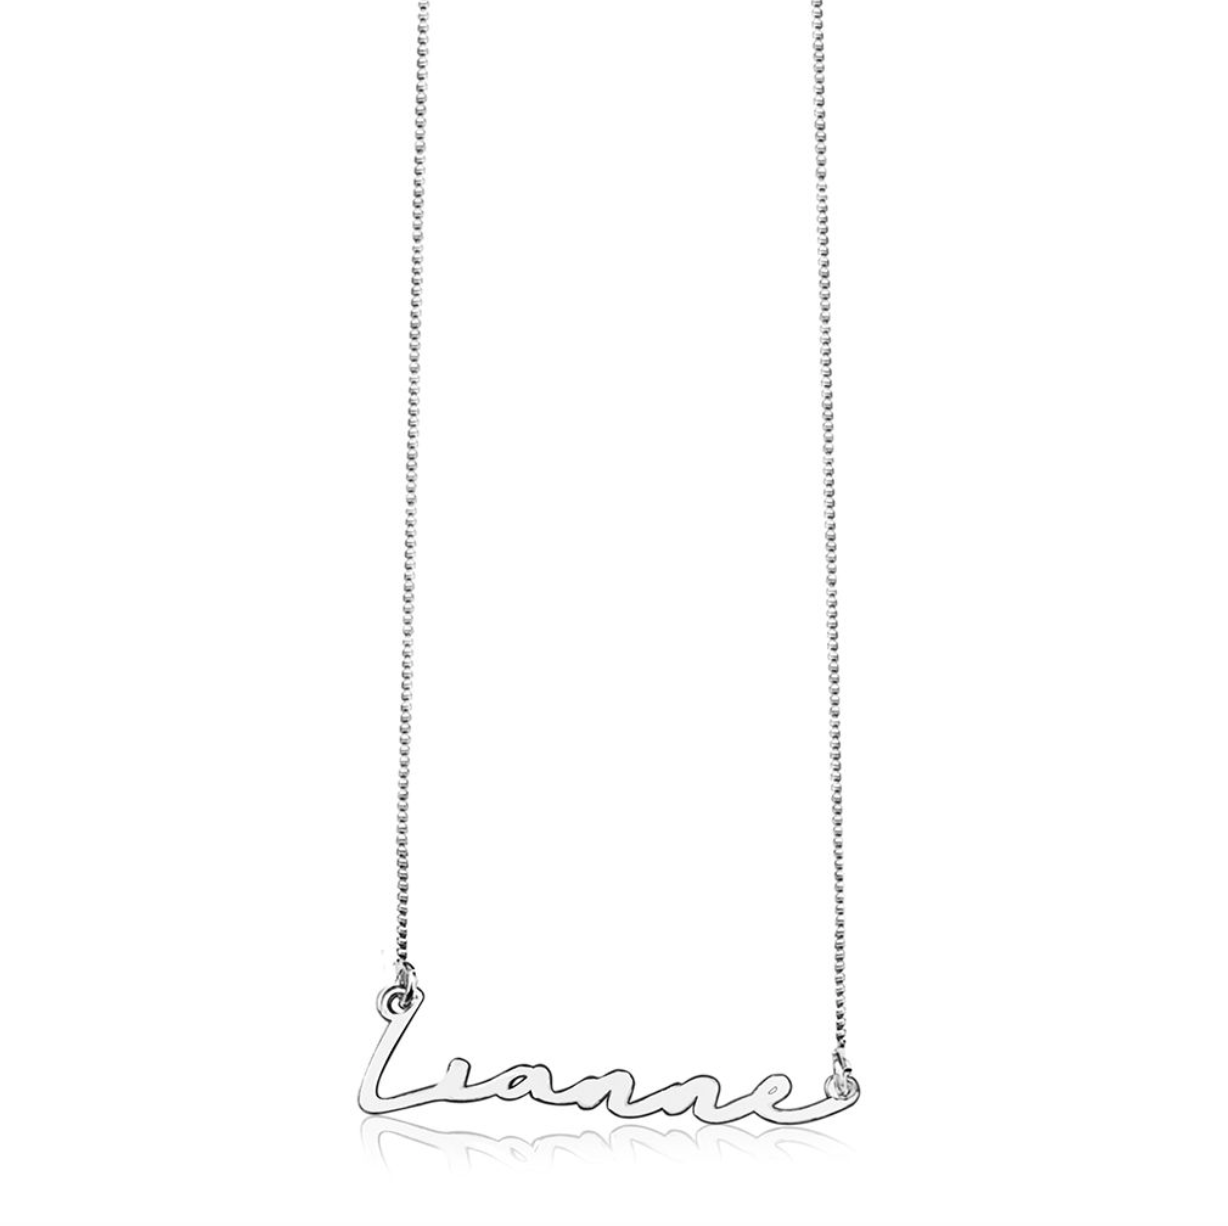 Lianne Handwriting Name Necklace